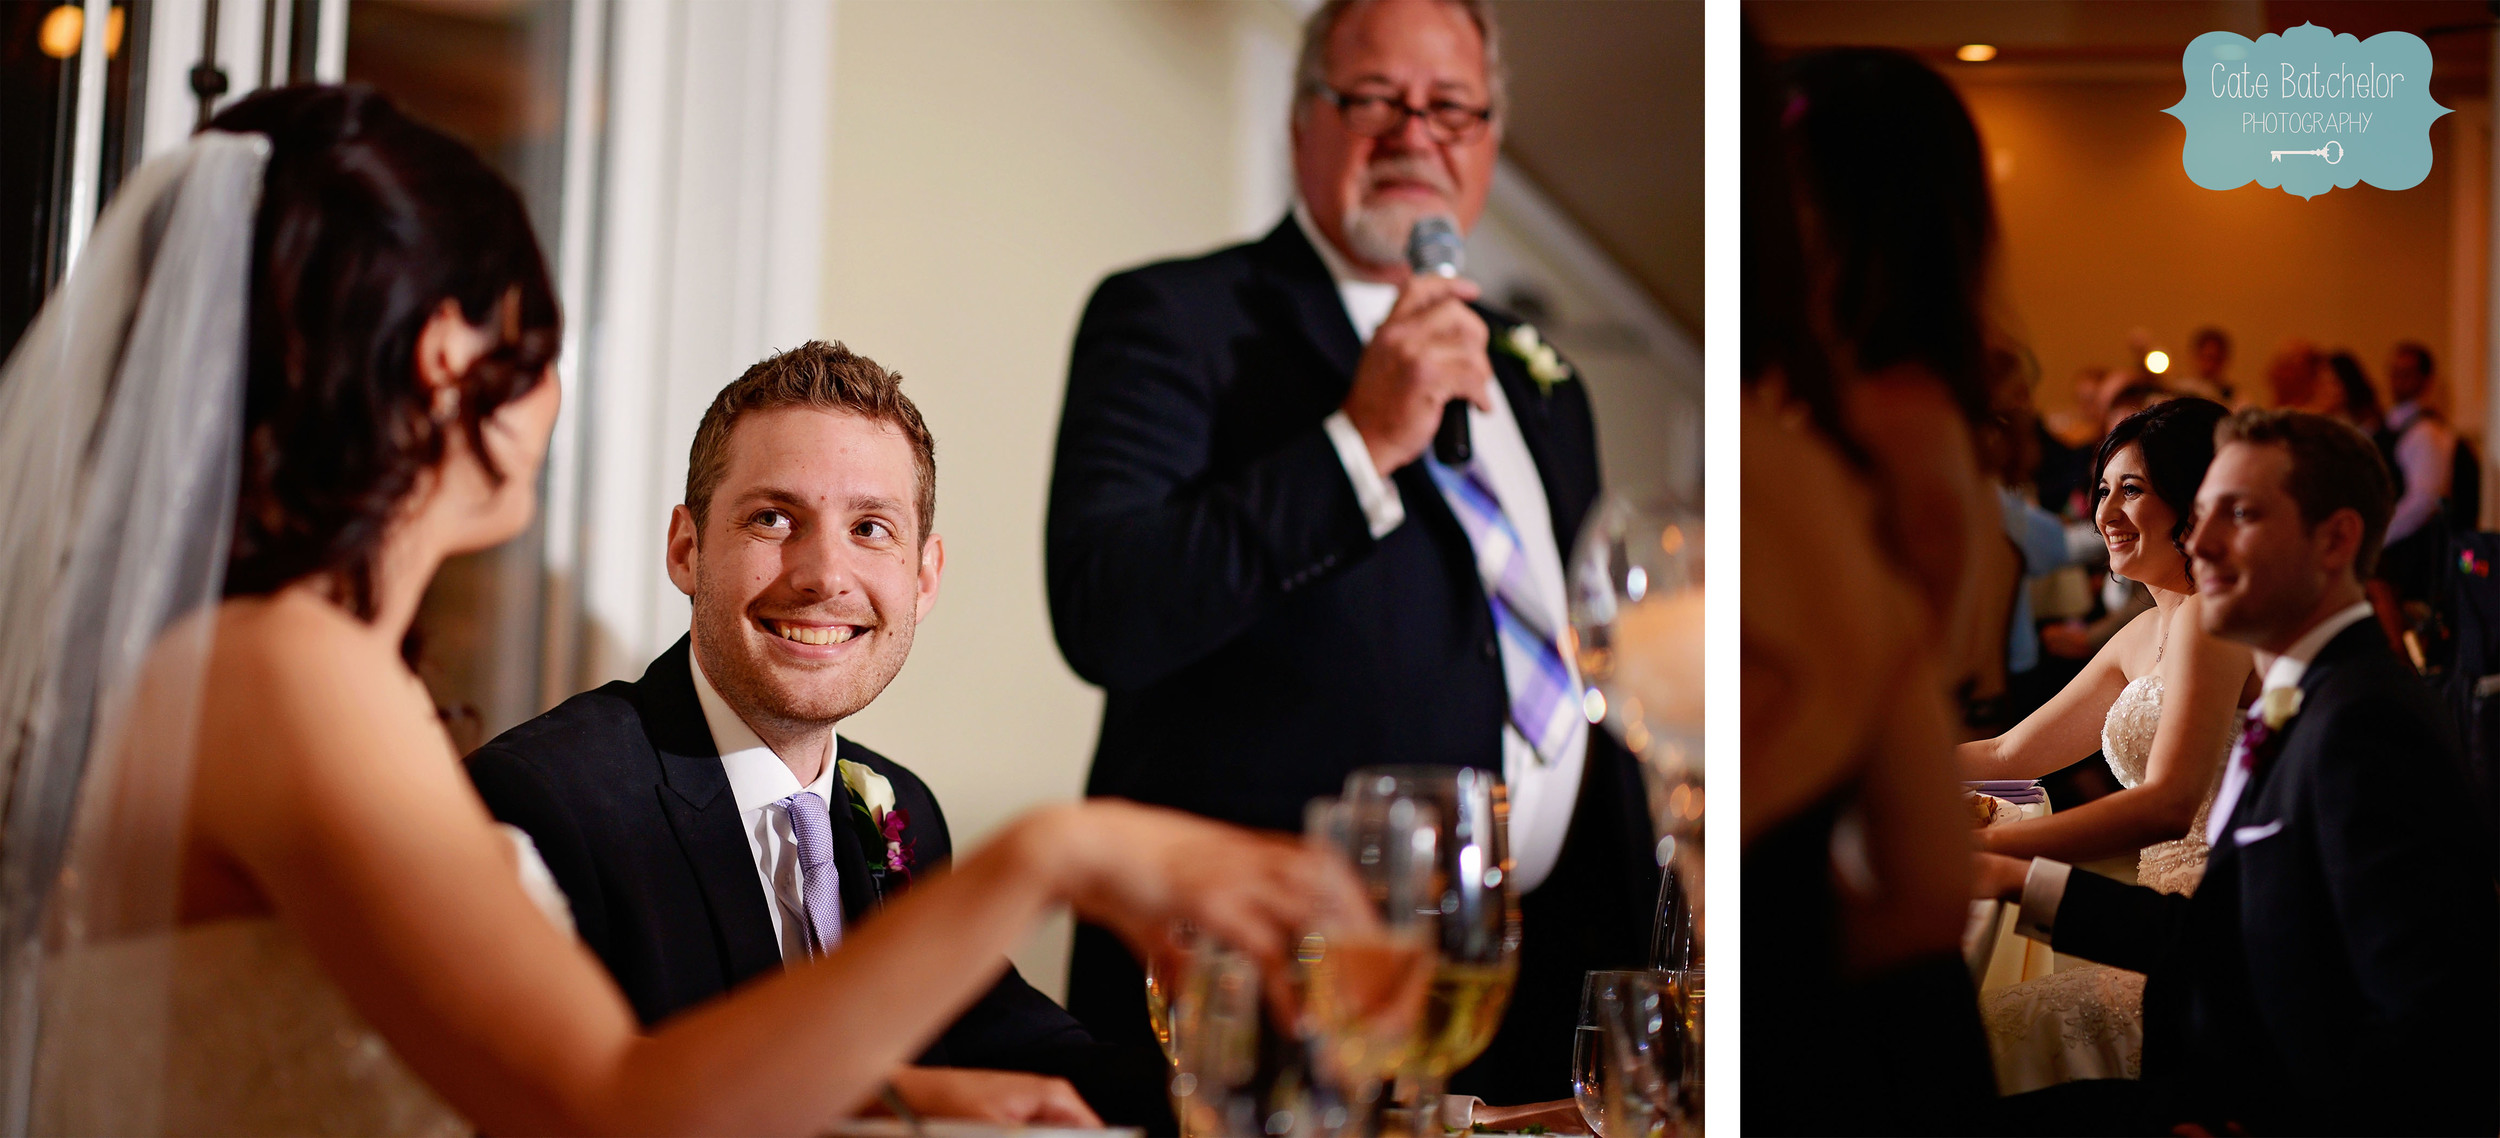 Some truly heartfelt toasts to the bride and groom.